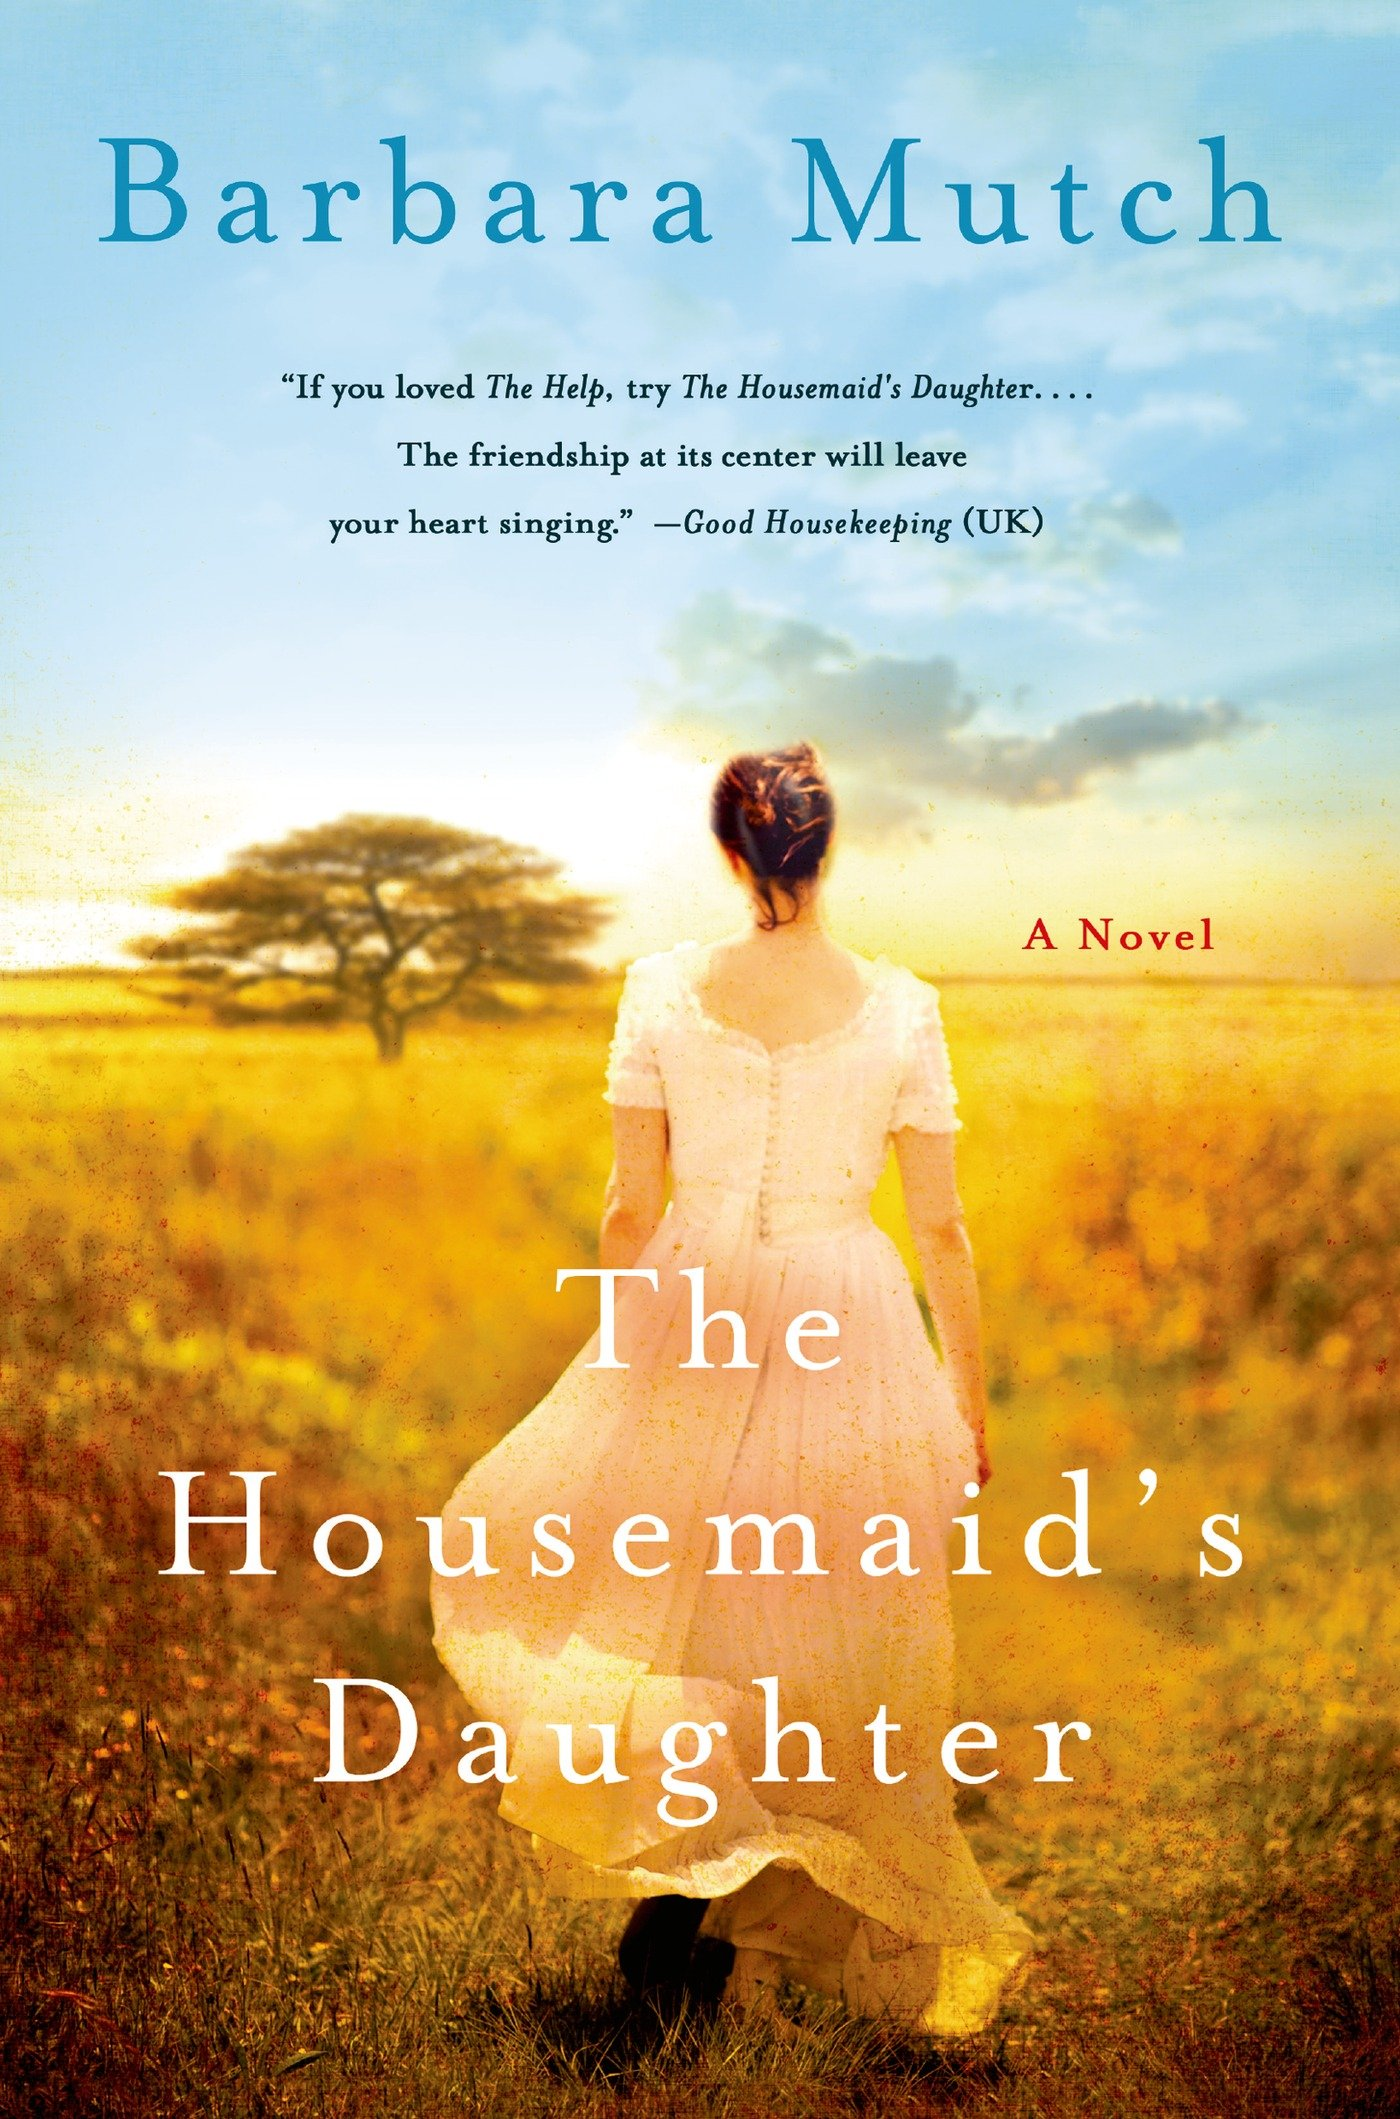 The Housemaid's Daughter, book review